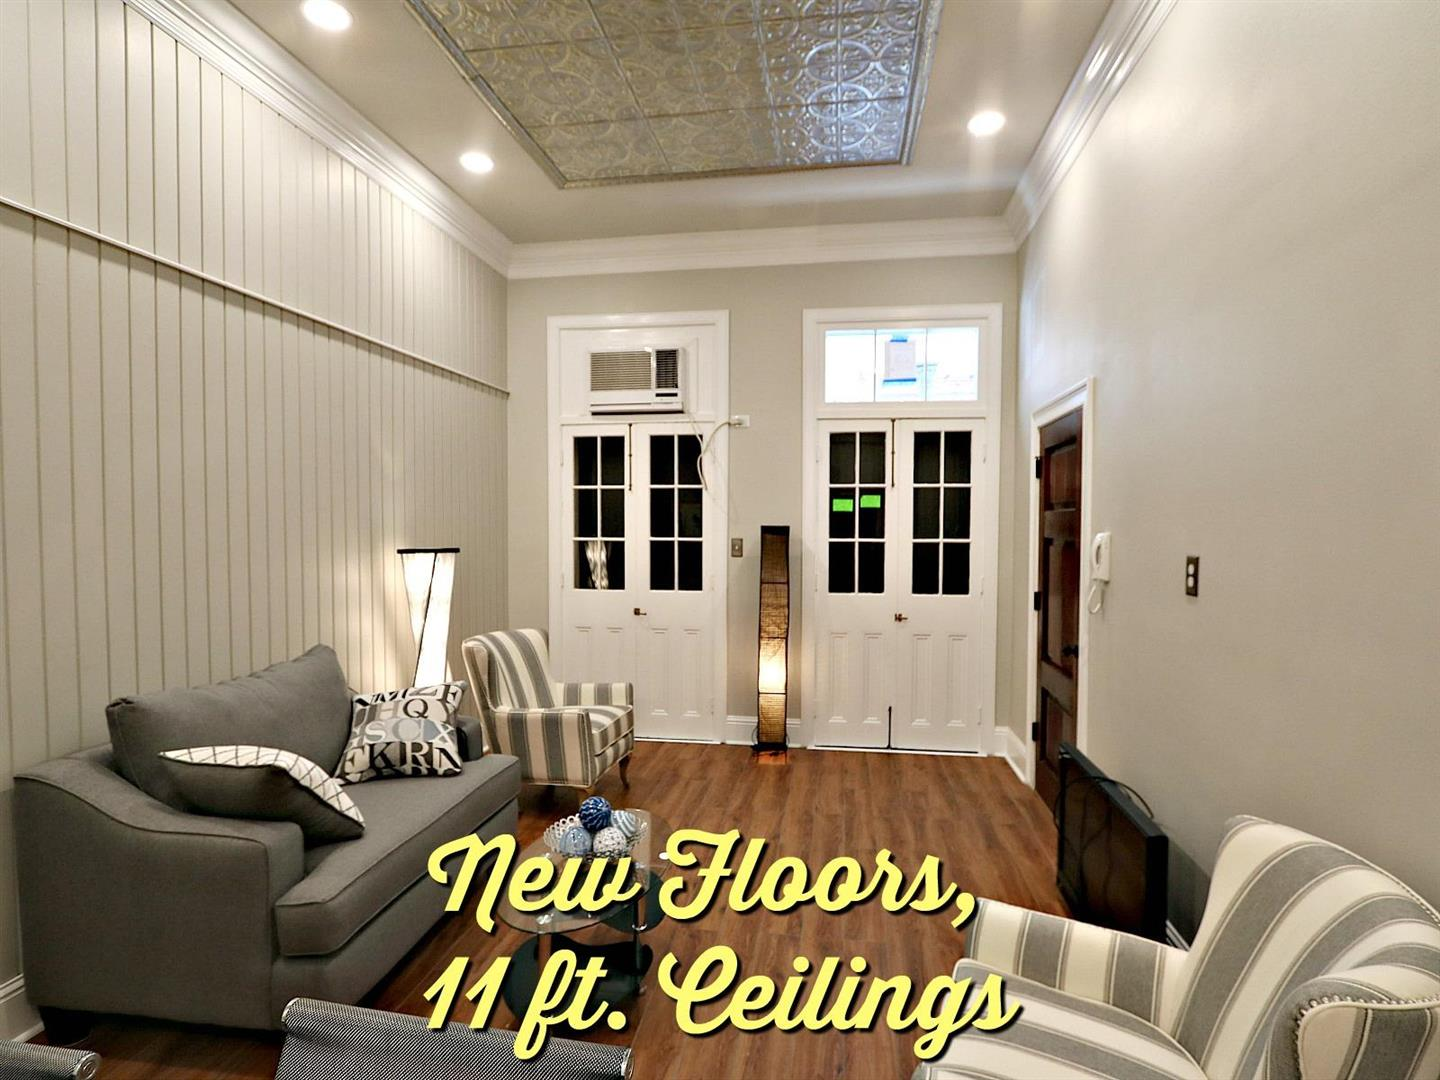 719St.AnnCondoLiving11ceilings.jpg